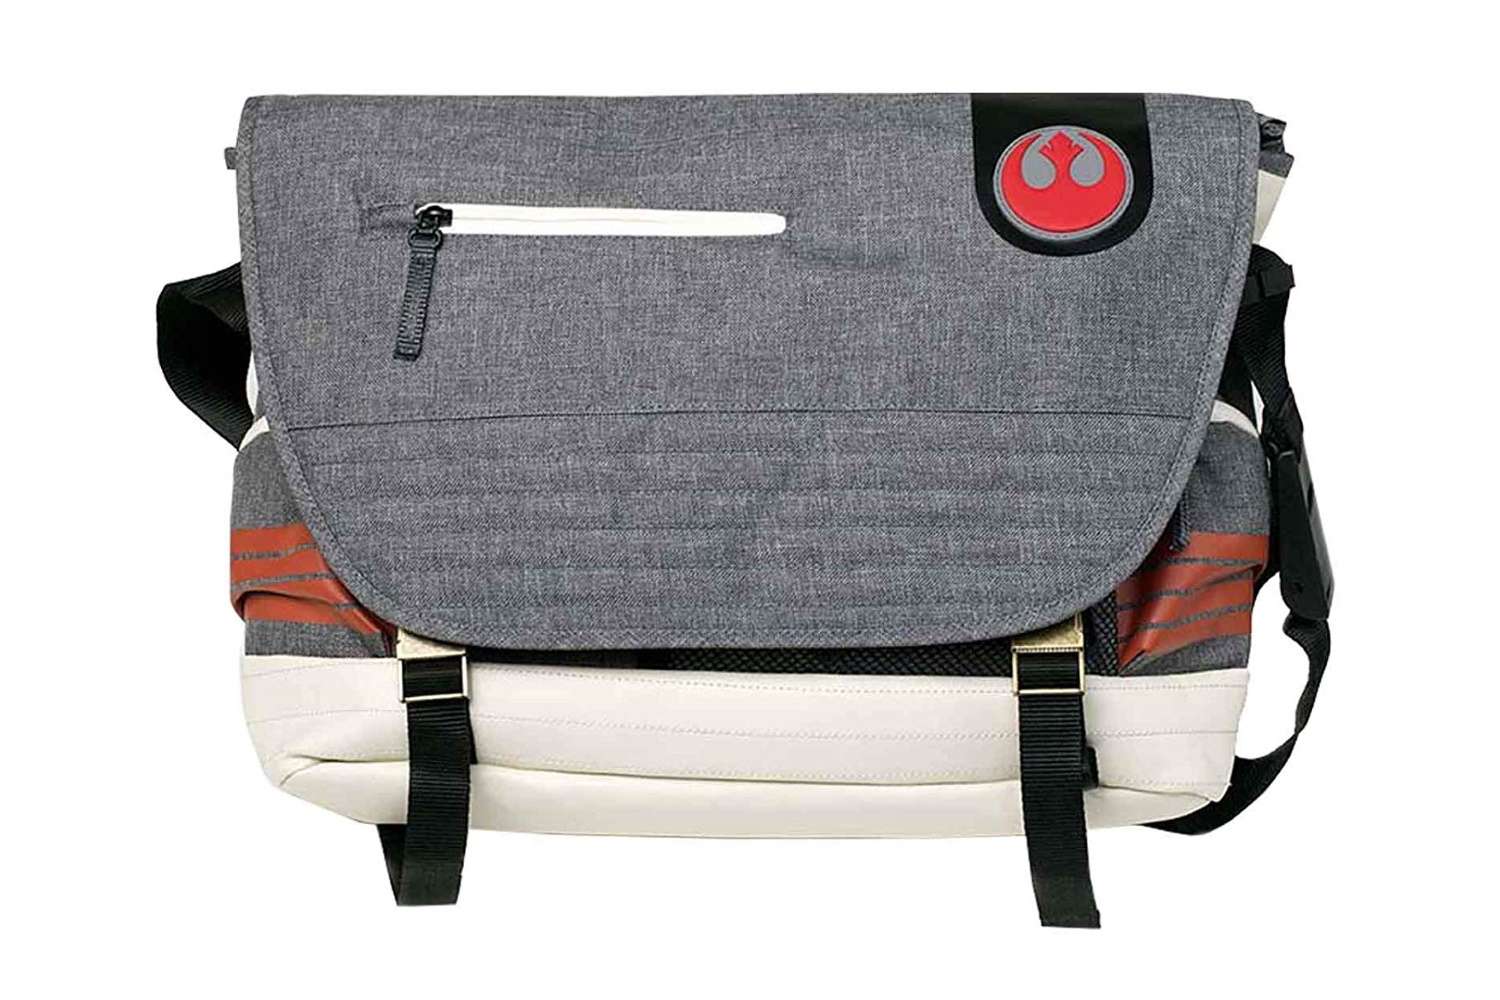 Rebel Pilot Messenger Bag on Amazon